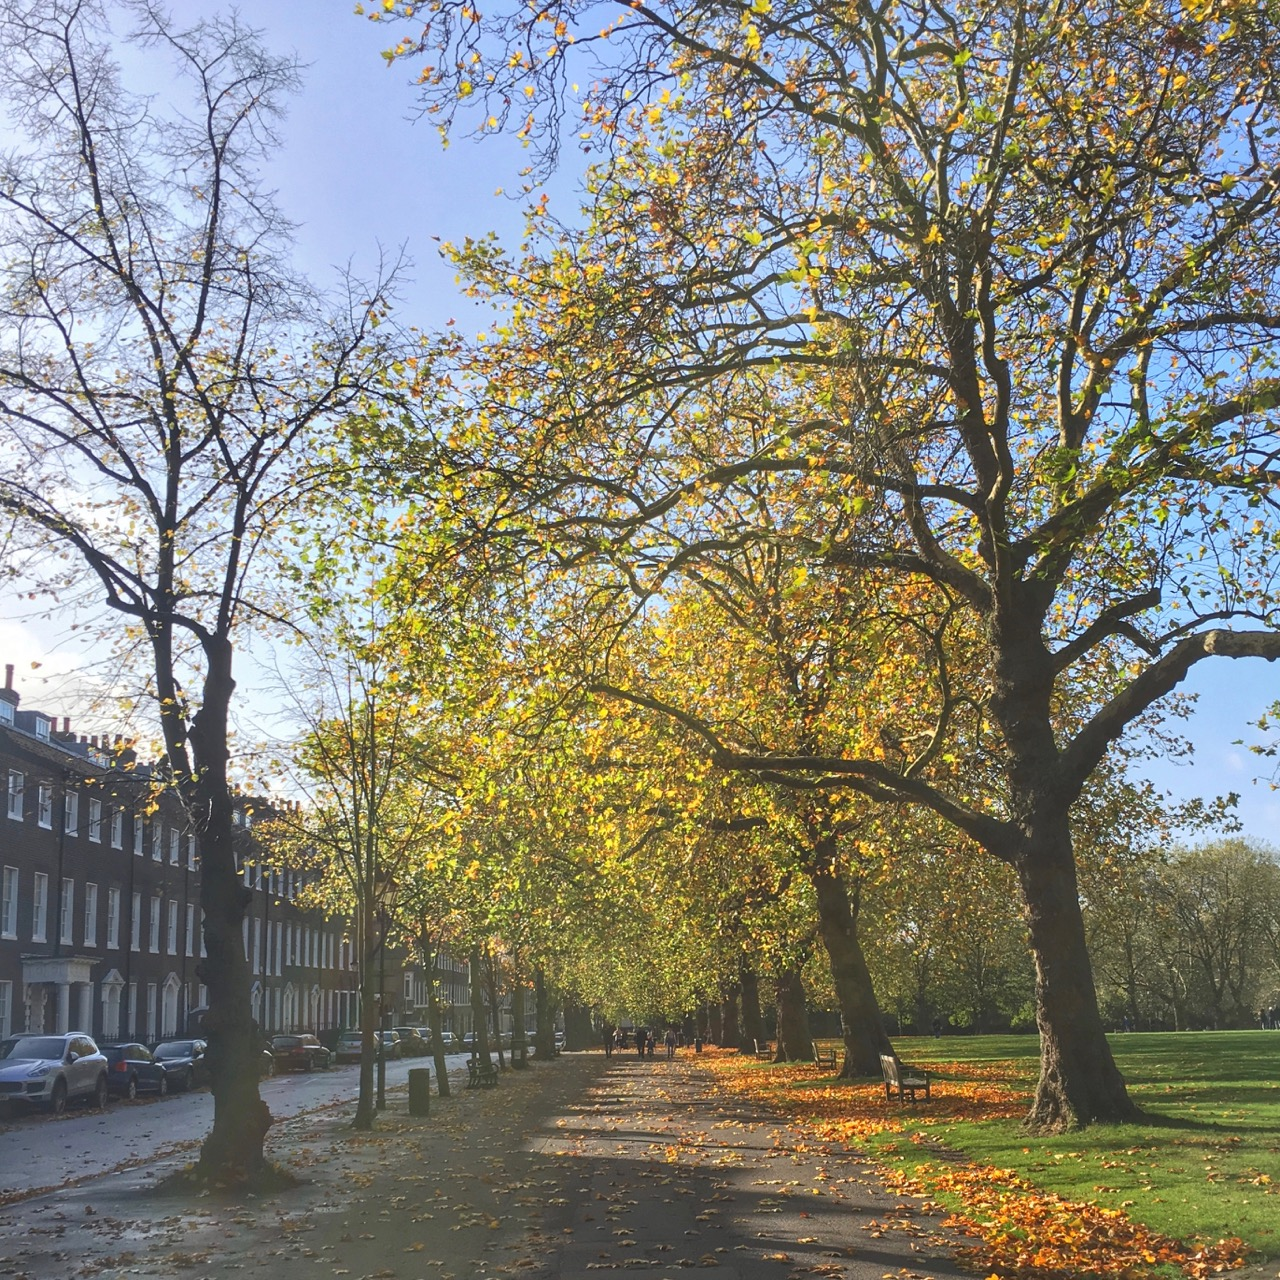 Autumn, London